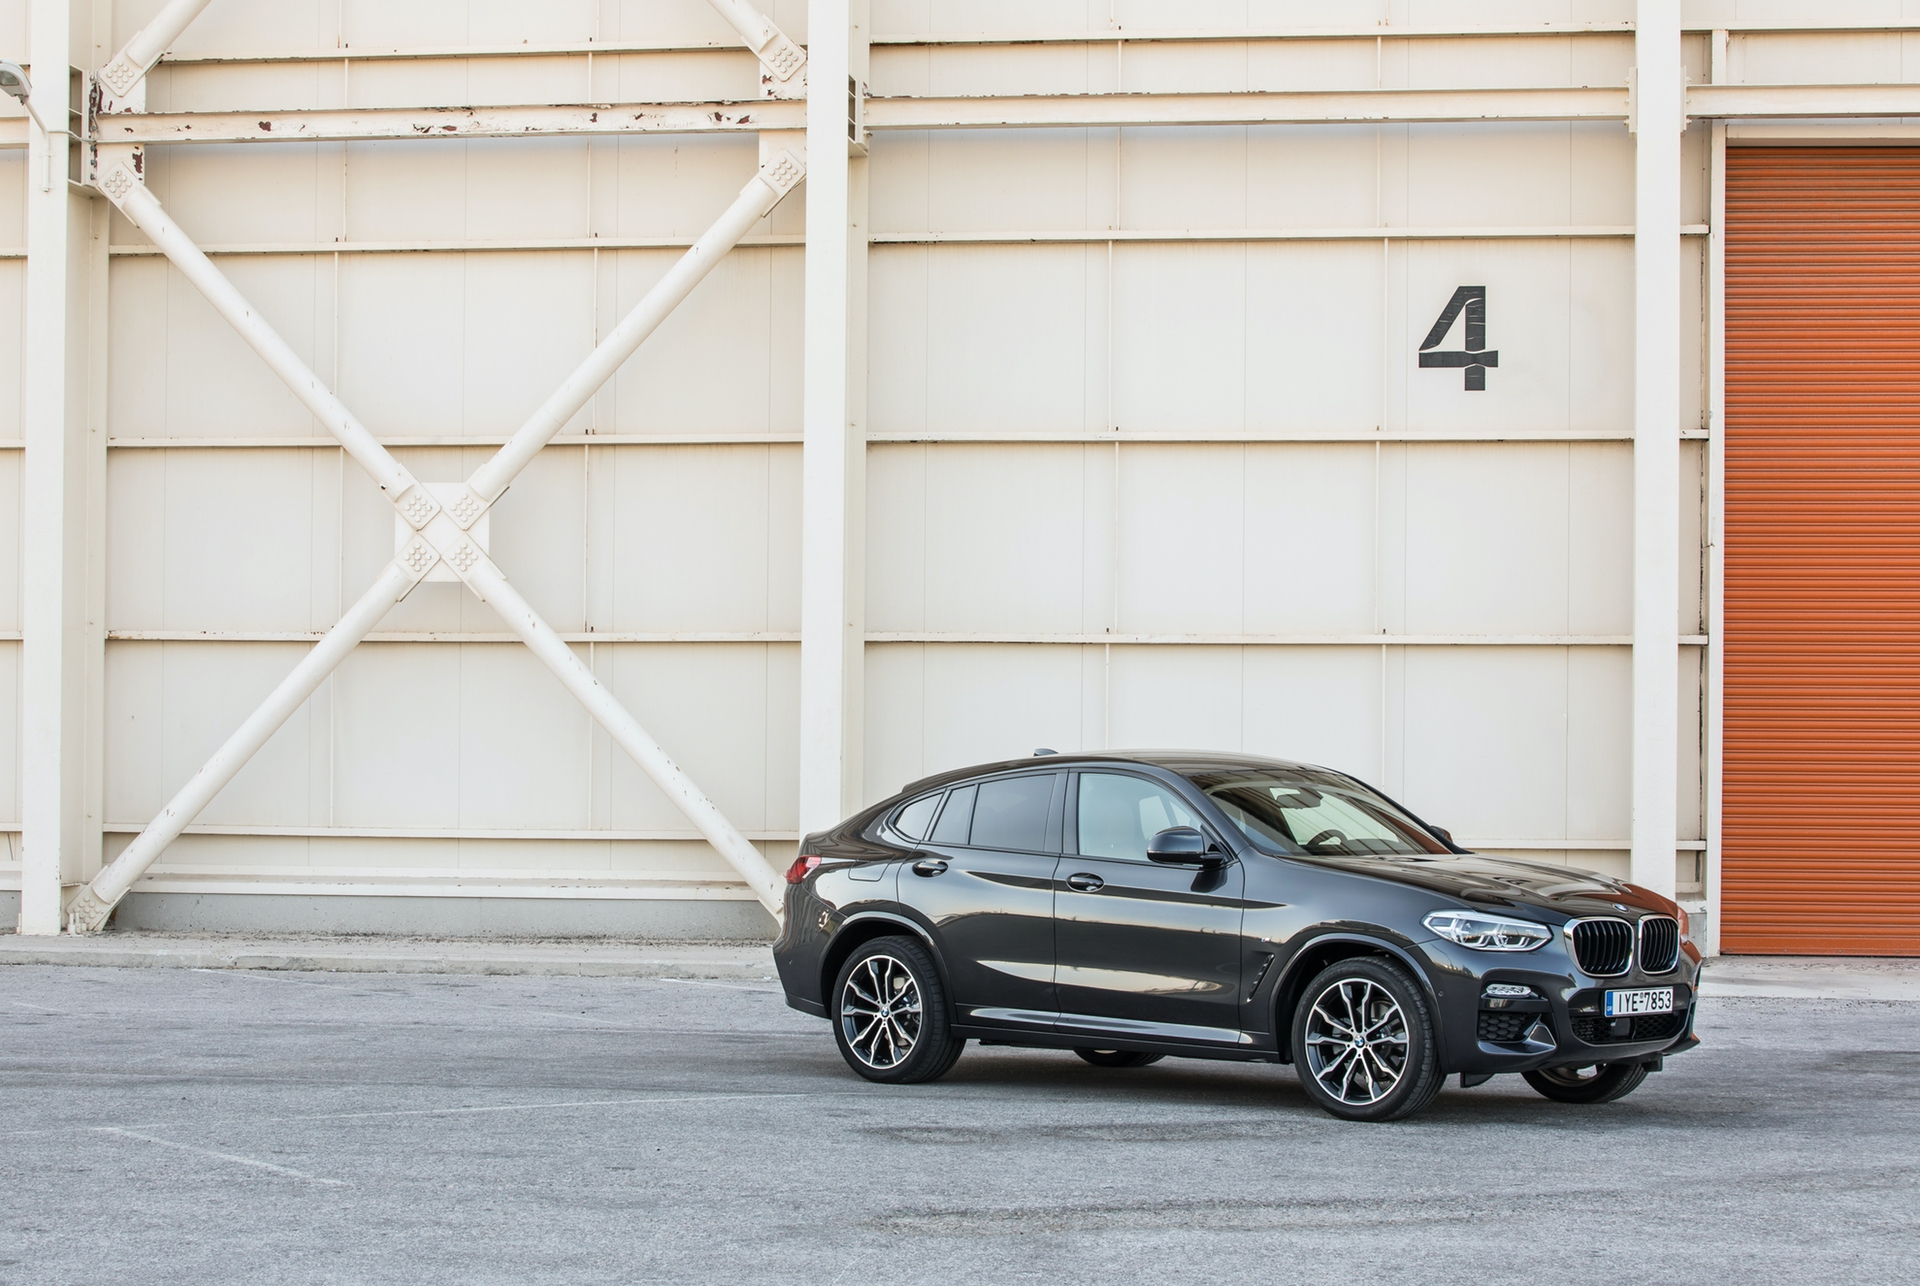 BMW_X4_greek_presskit_0031